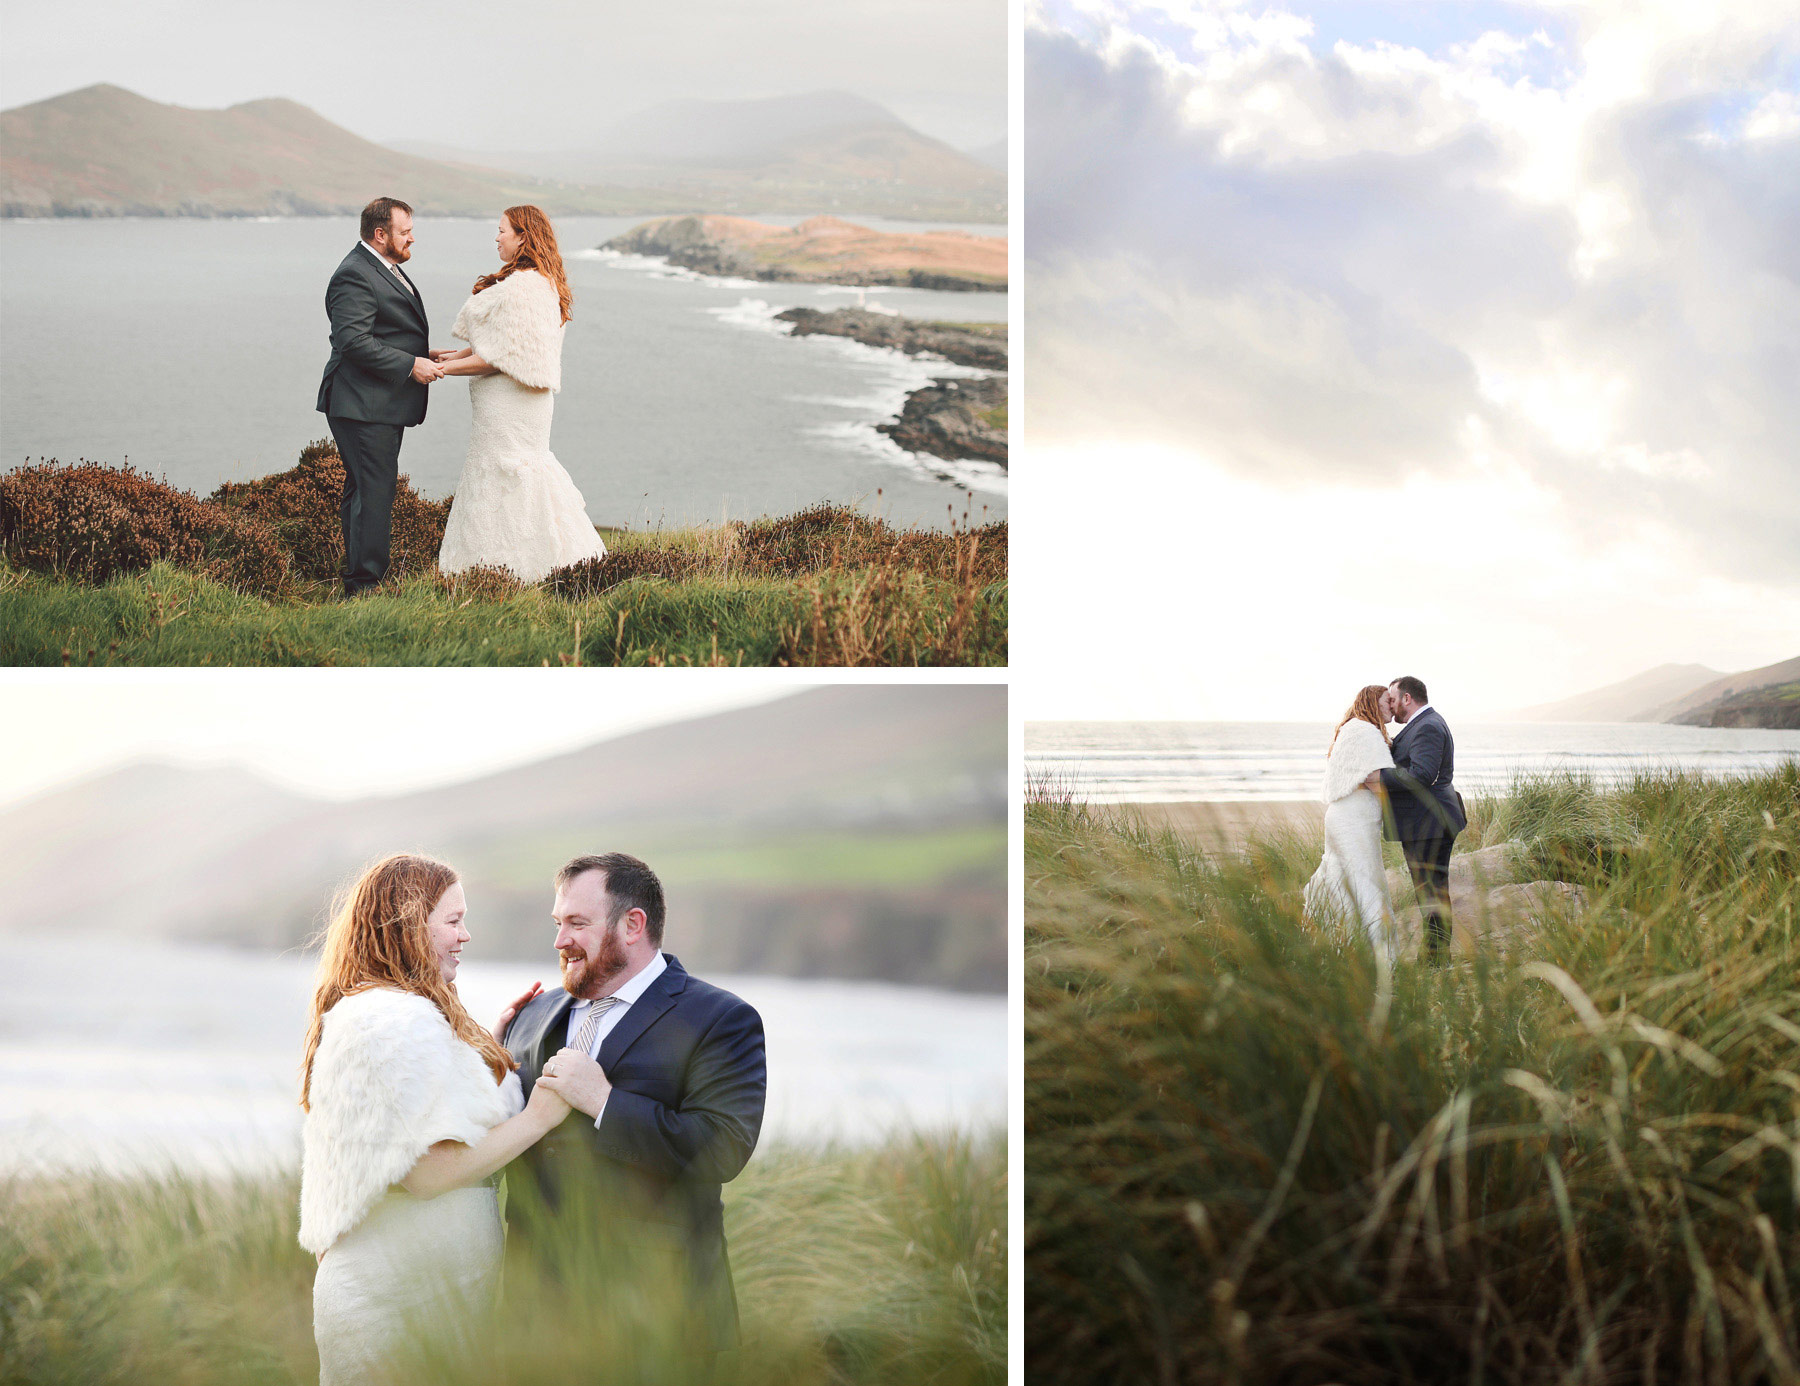 07-Kilarney-Ireland-Wedding-Photographer-by-Andrew-Vick-Photography-Fall-Autumn-Destination-Bride-Groom-Landscape-Countryside-Village-Ocean-Beach-Embrace-Kiss-Vintage-Becca-and-Donal.jpg